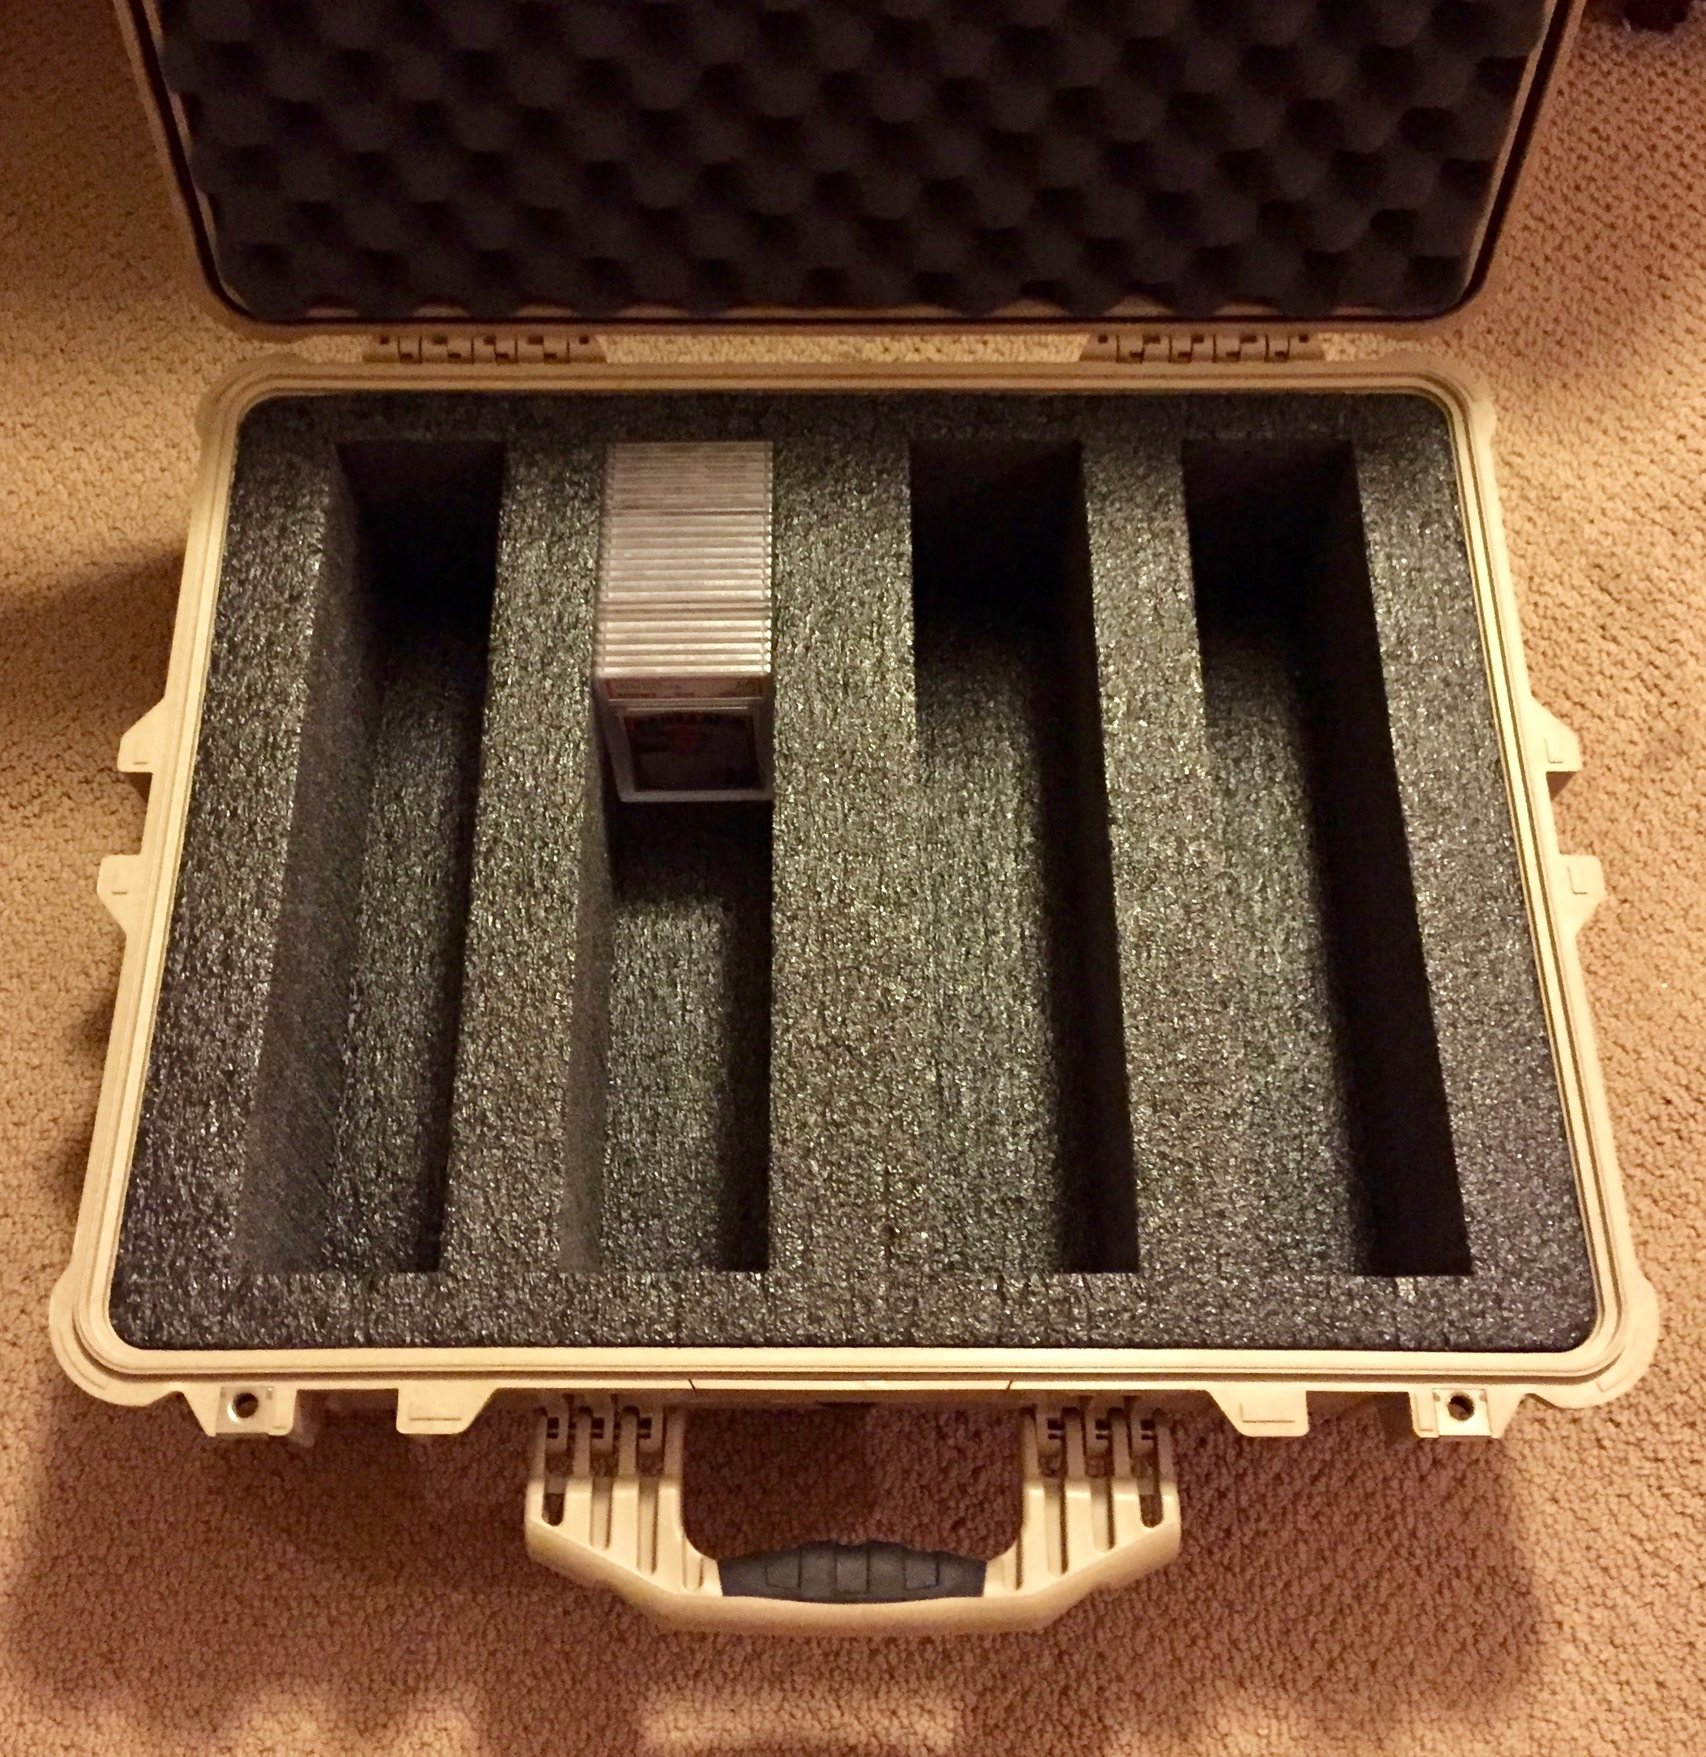 FS: Pelican 1600 Graded PSA Card Storage Case With Insert